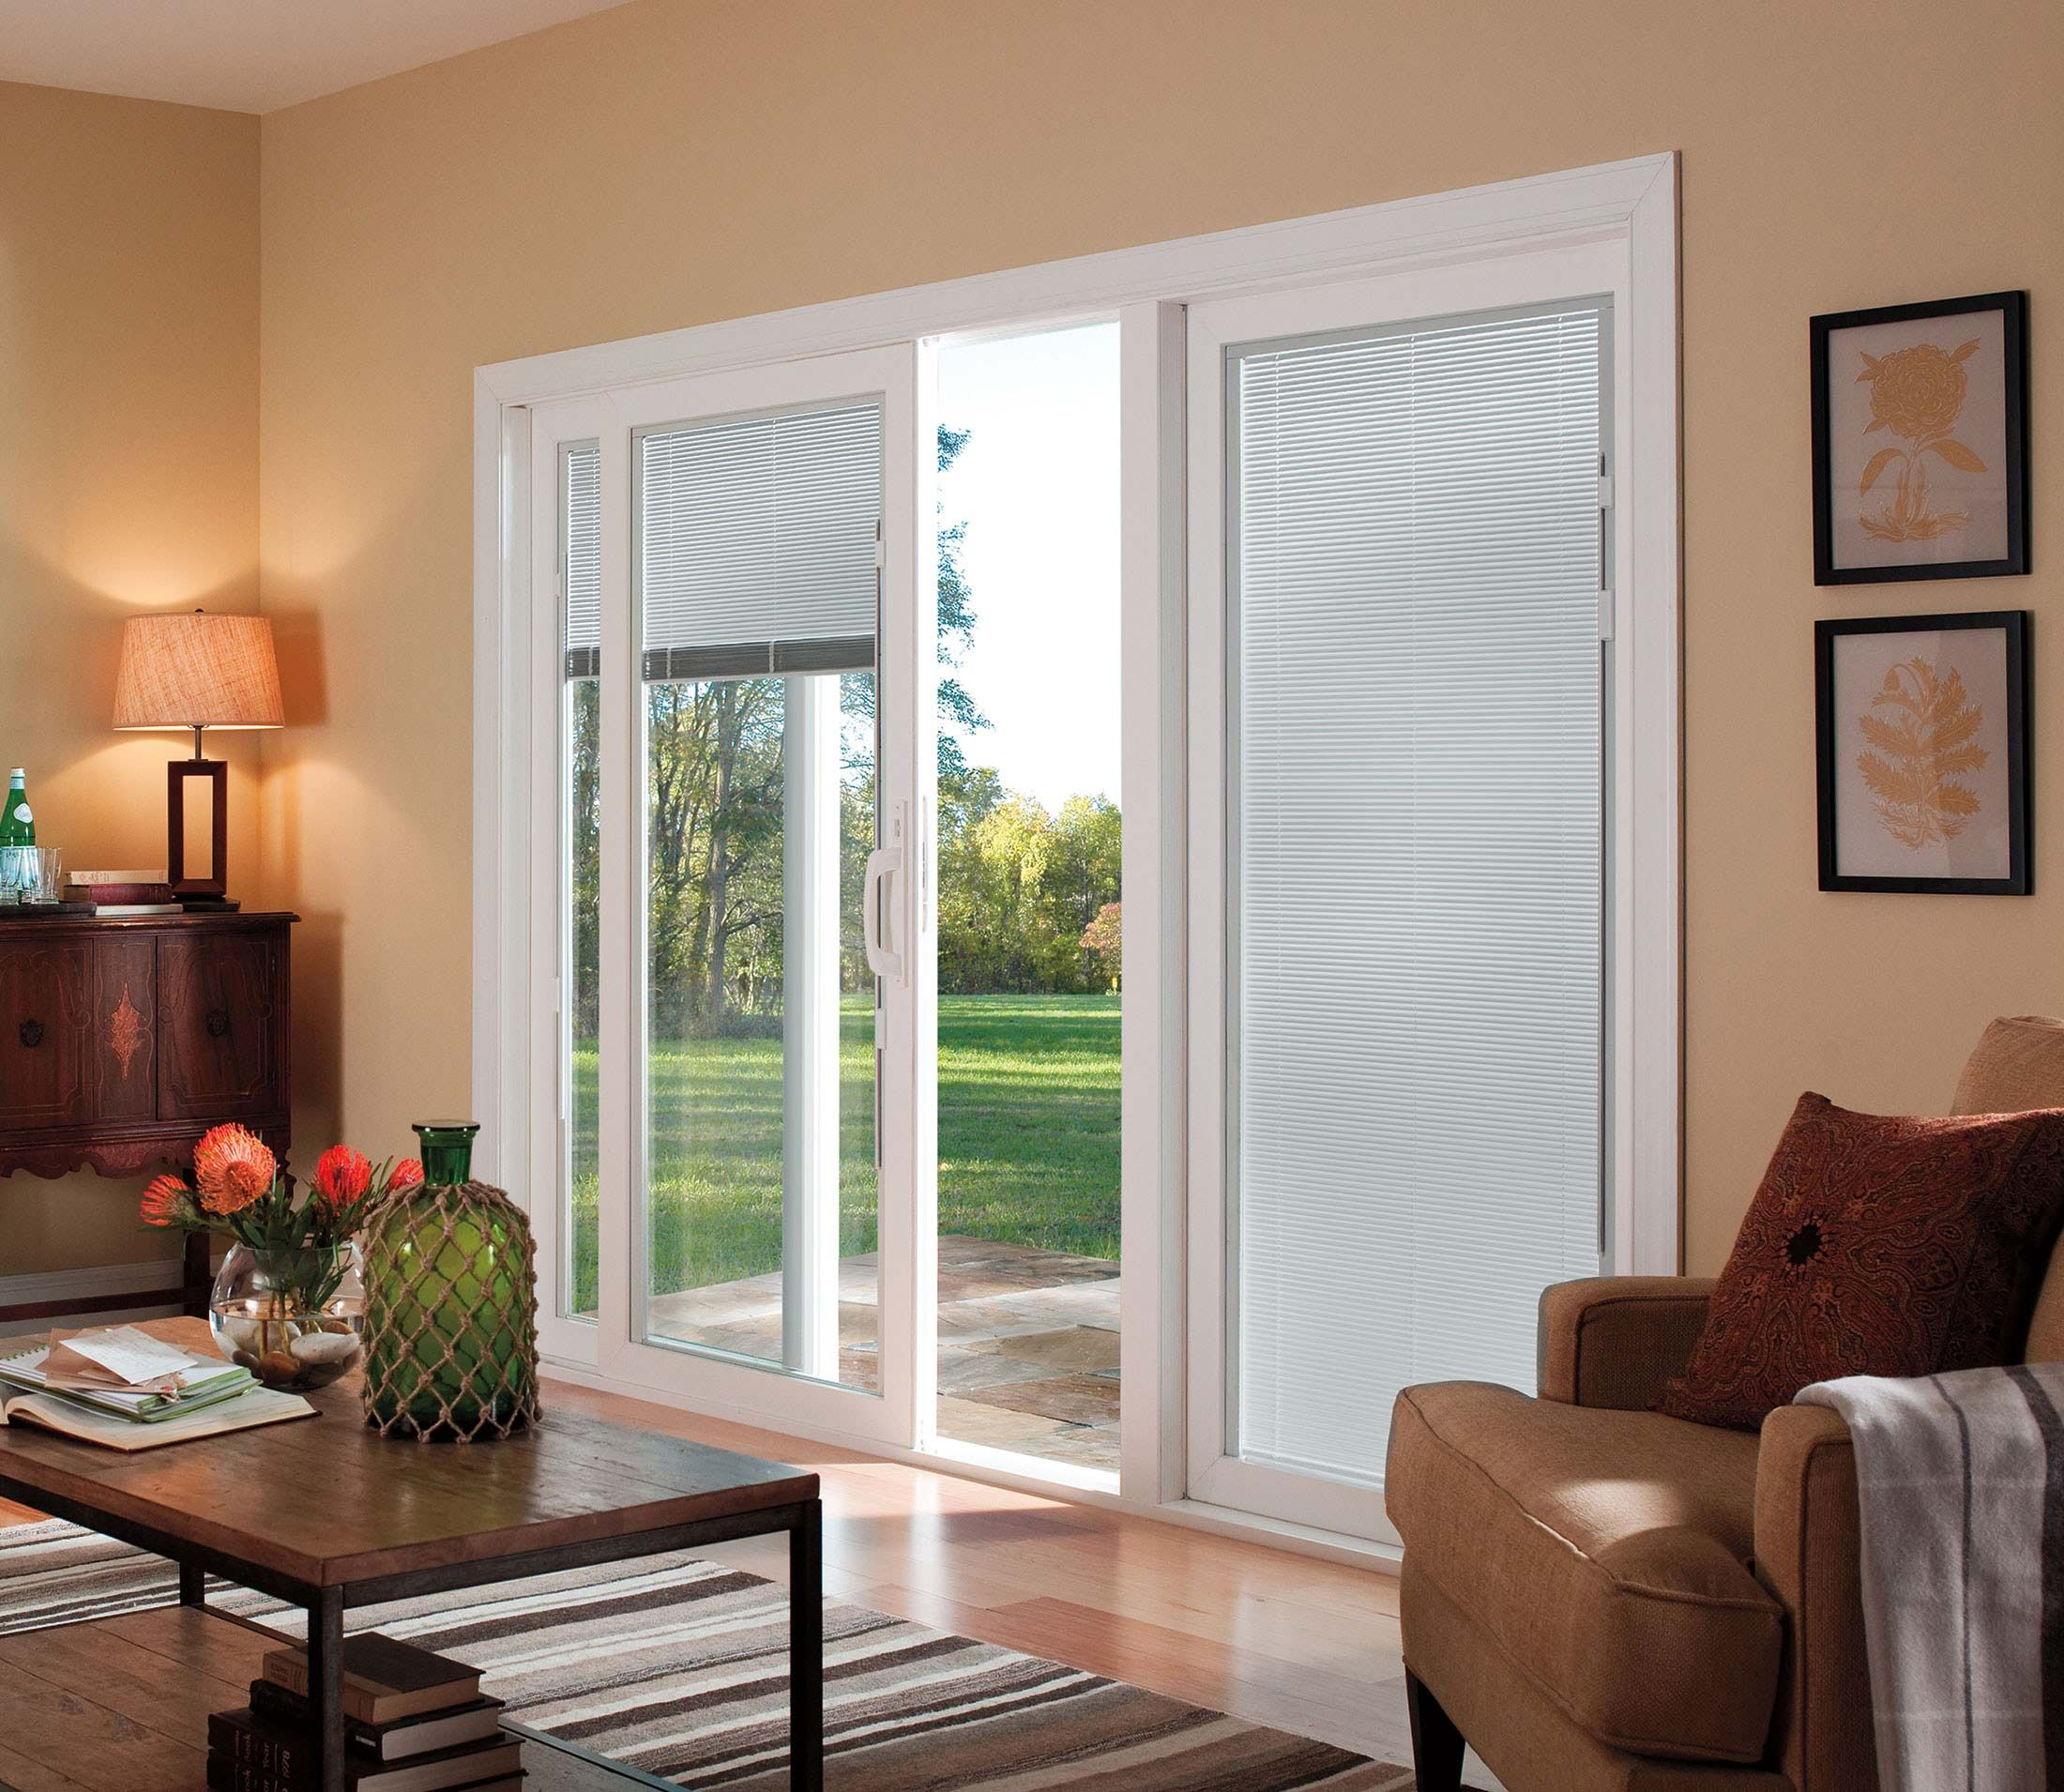 Pella 350 Series Sliding Patio Door Vinyl Triple Pane Gl Rolscreen Retractable Screen Option Blinds Between The